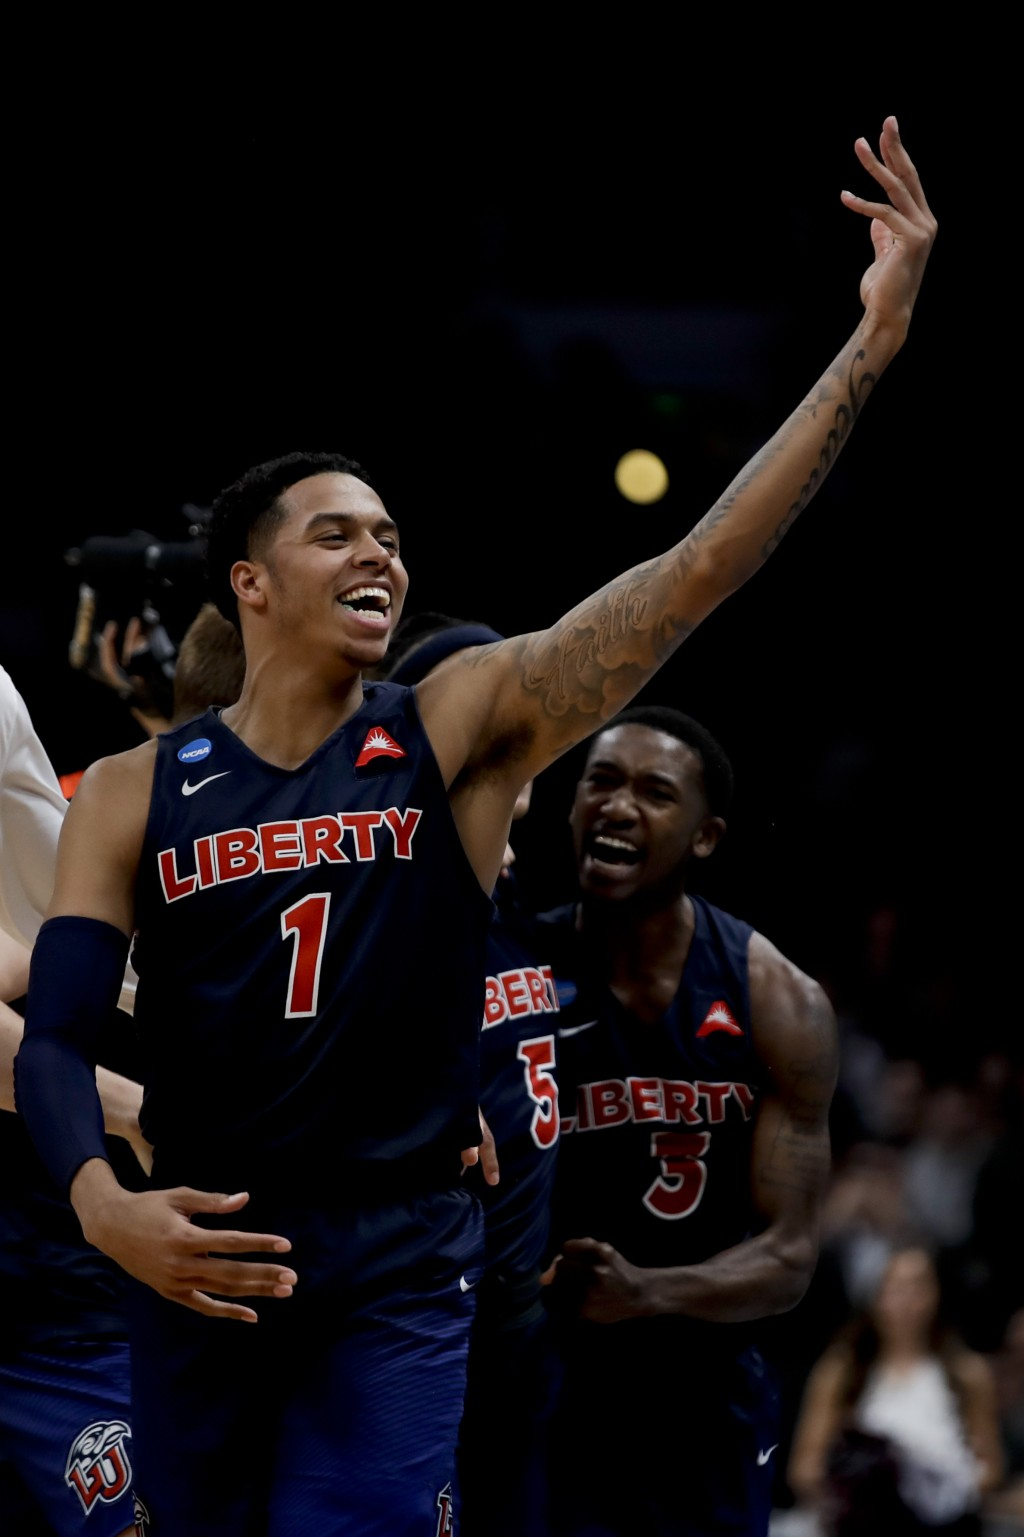 Liberty guard Caleb Homesley celebrates after the team's win against Mississippi State in a first-round game in the NCAA men's college basketball tour